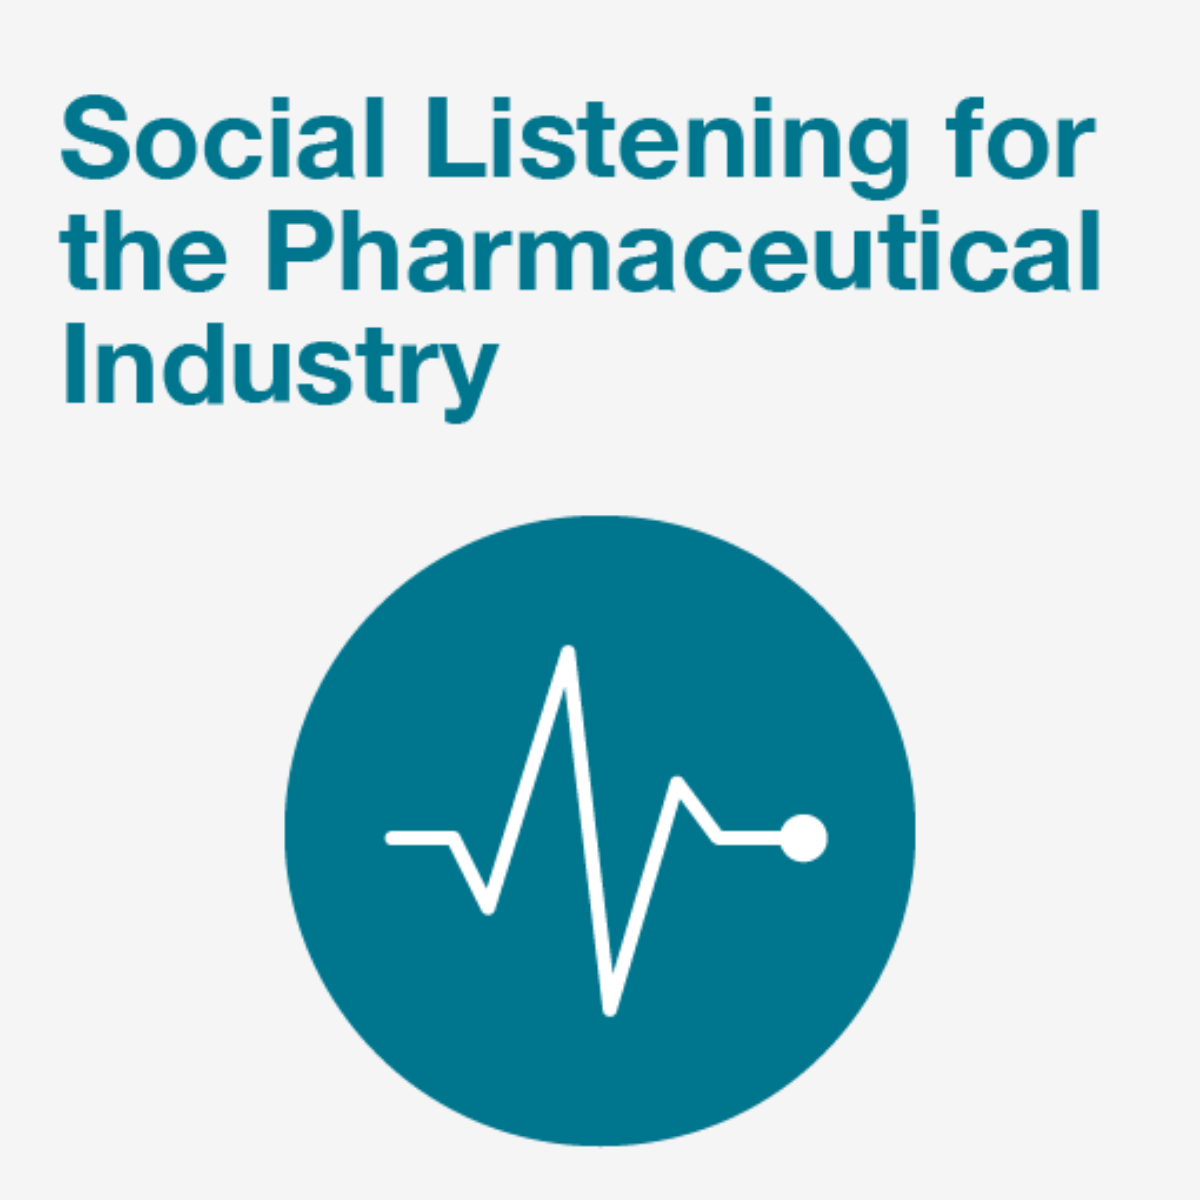 The Benefits of Social Listening for The Pharmaceutical Industry